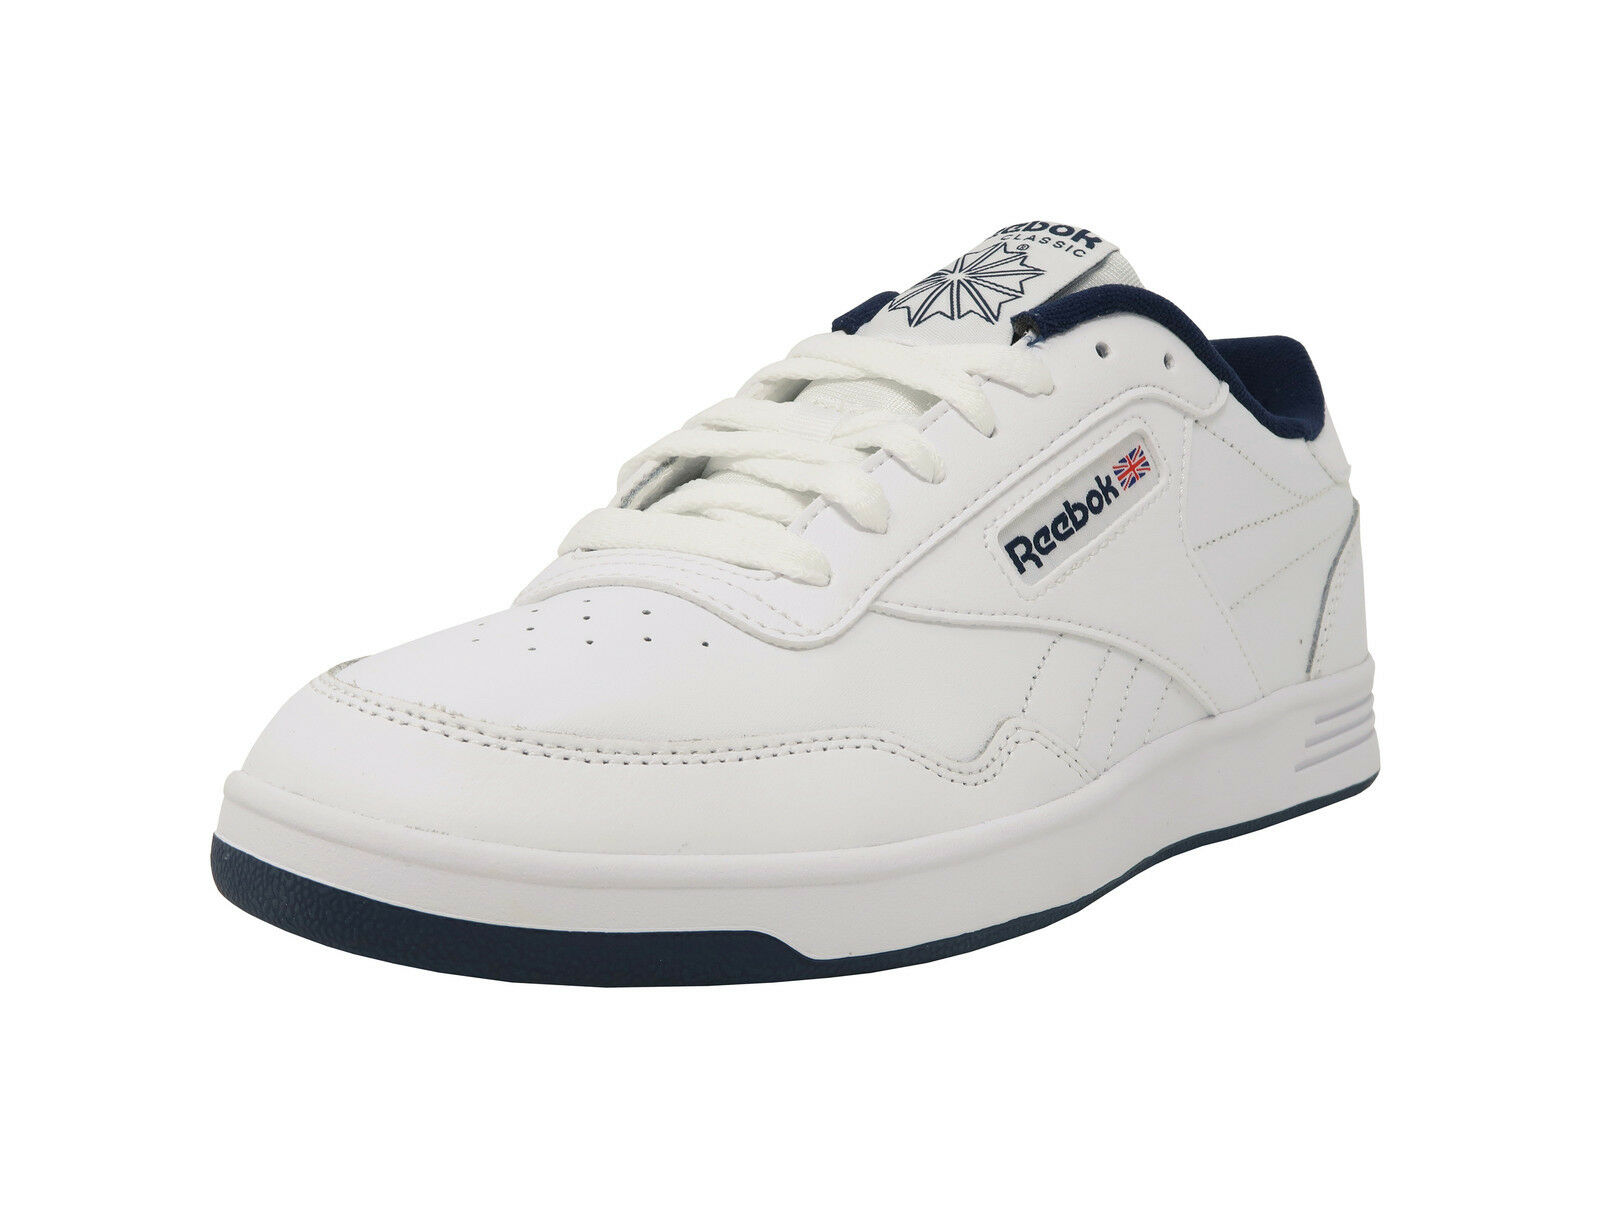 REEBOK Club MemTech MemTech MemTech 2.0 Classic White Navy Blue Athletic Sneakers Men Shoes 8a23d4